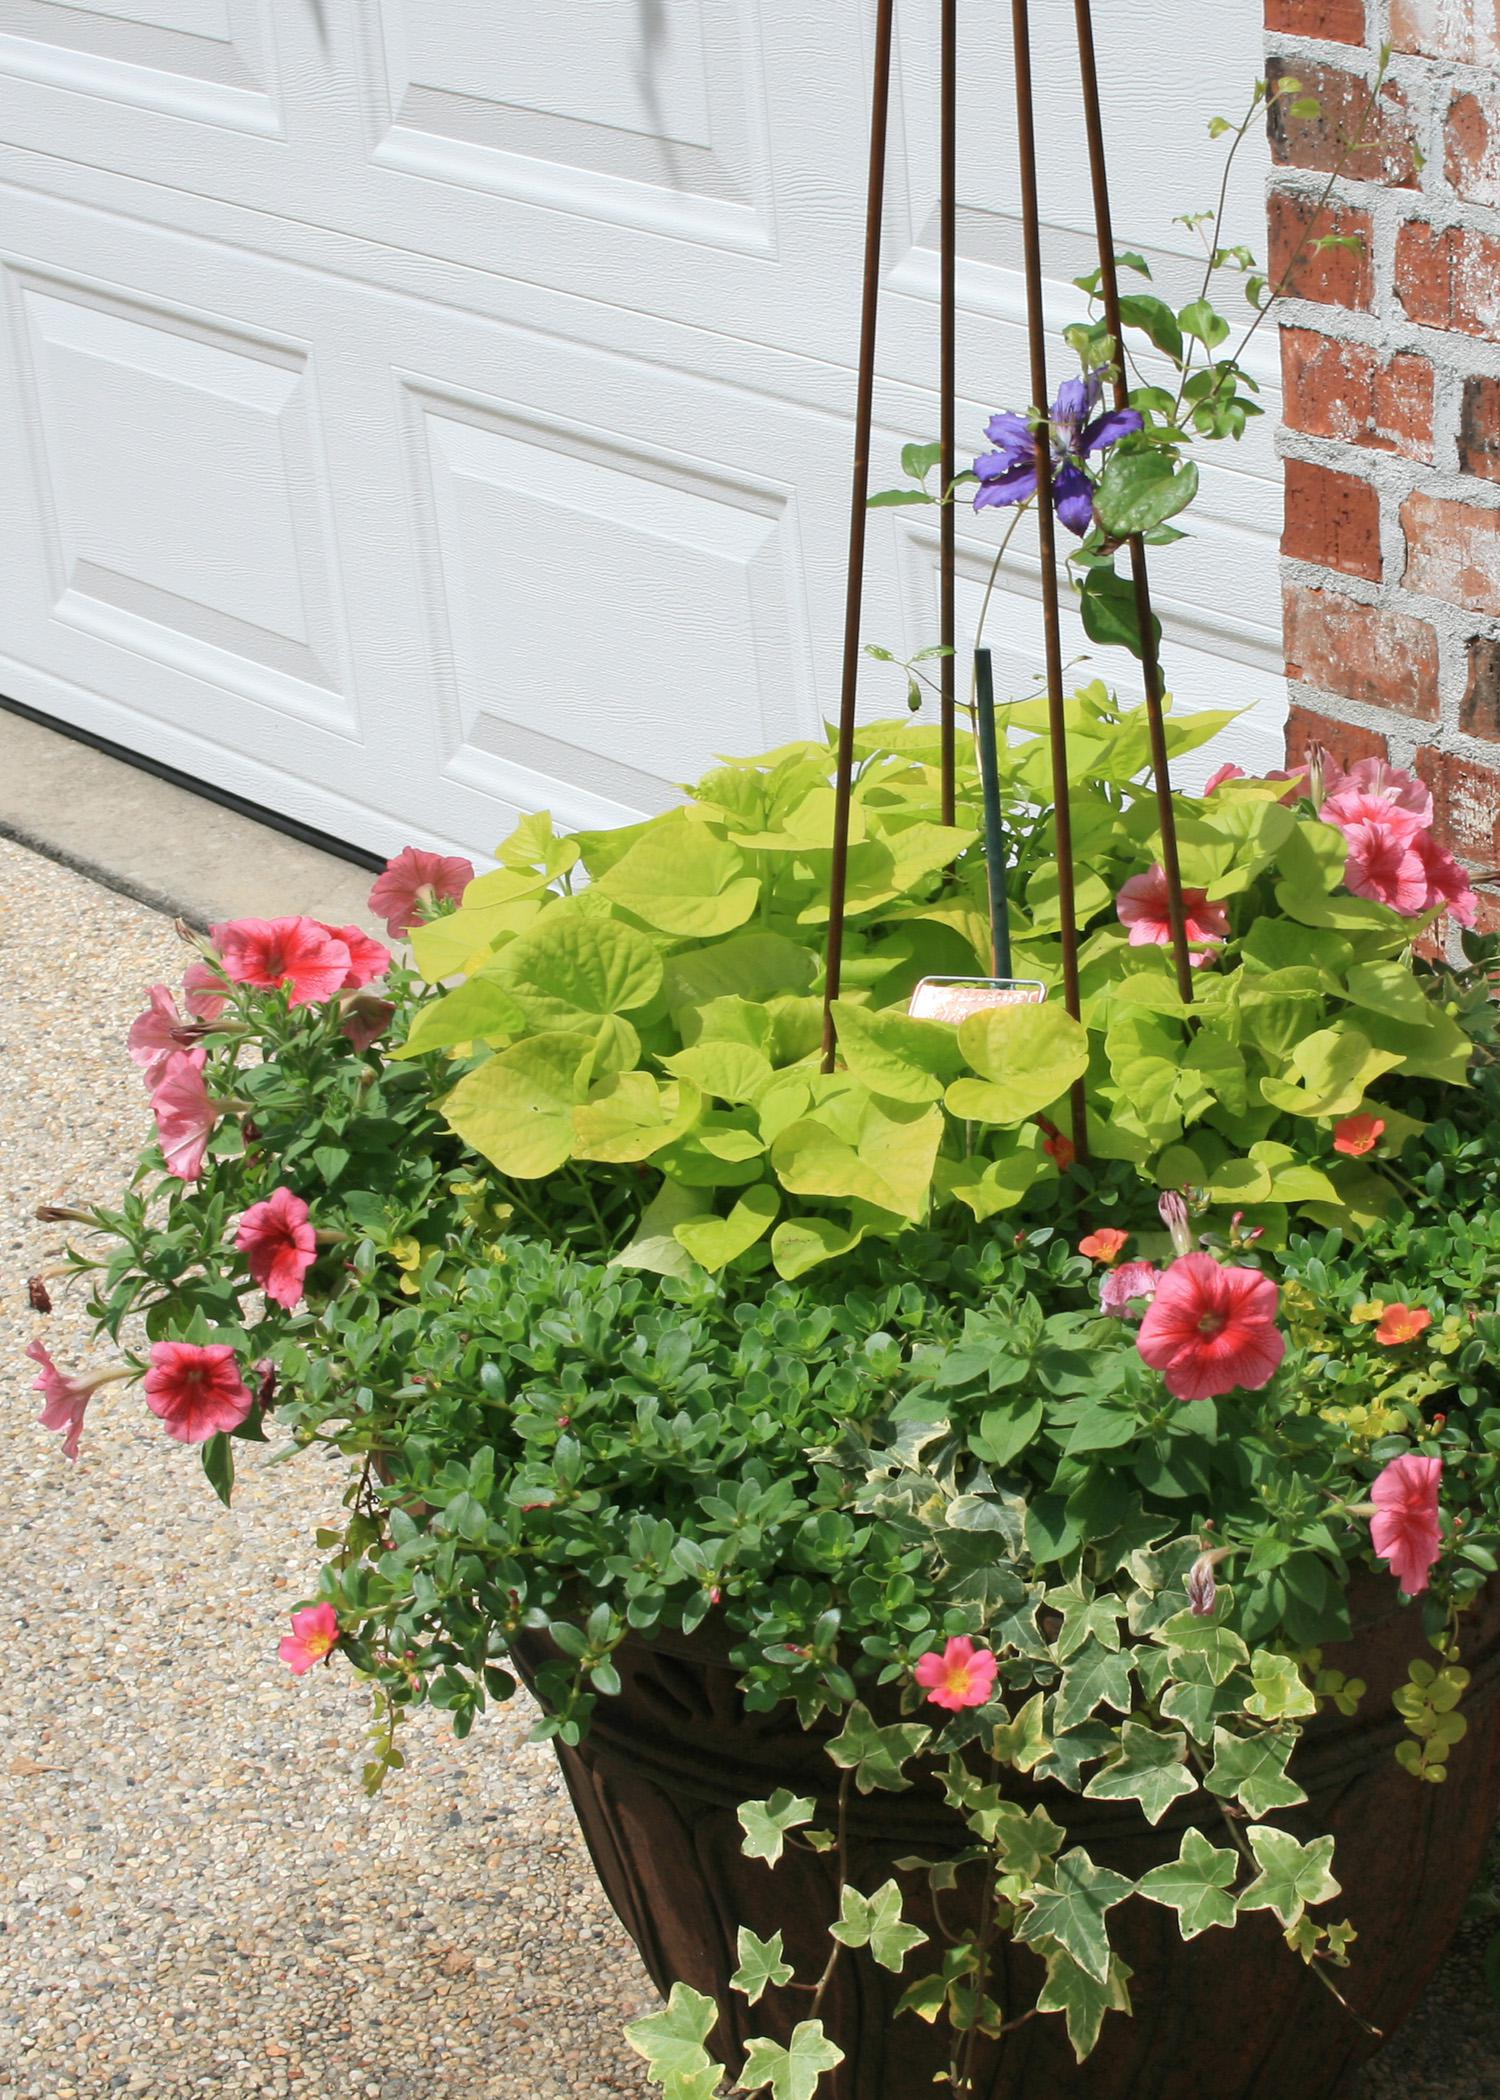 The salmon-colored Bermuda Beach Supertunia combines well with variegated ivy and the light green Sweet Caroline sweet potato vine. (Photo by MSU Extension Service/Gary Bachman)